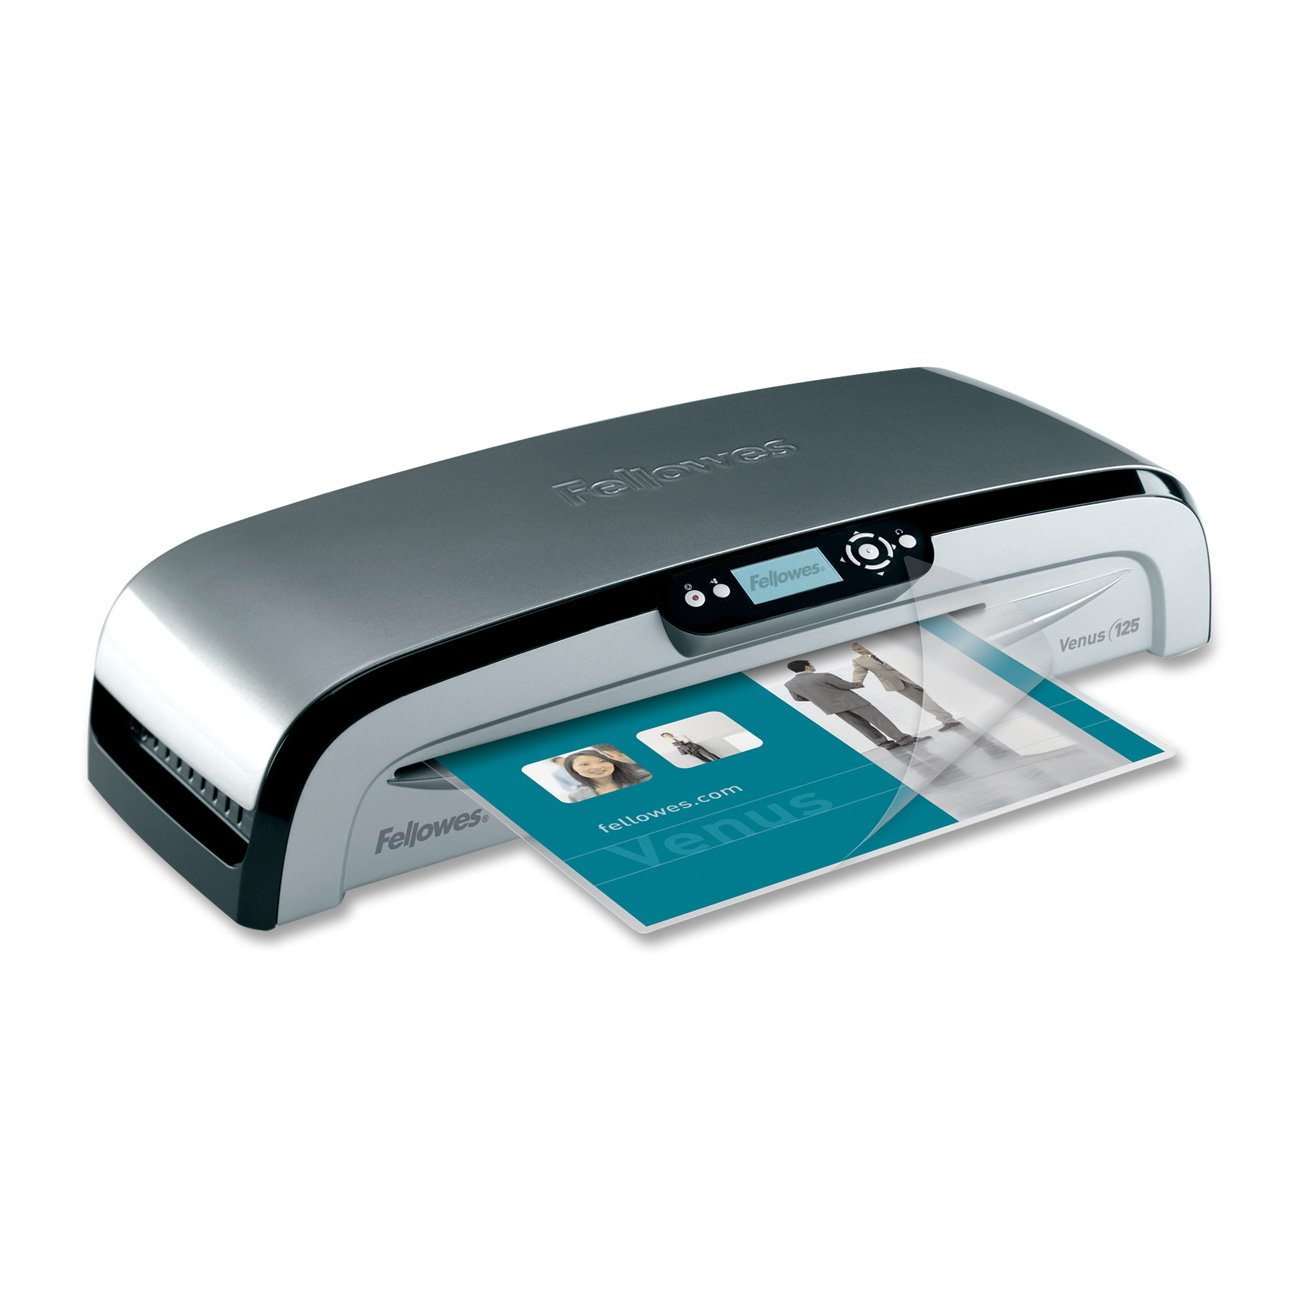 Fellowes Venus 125 Laminator, 12.5 Inch with 10 Pouches (5215901)